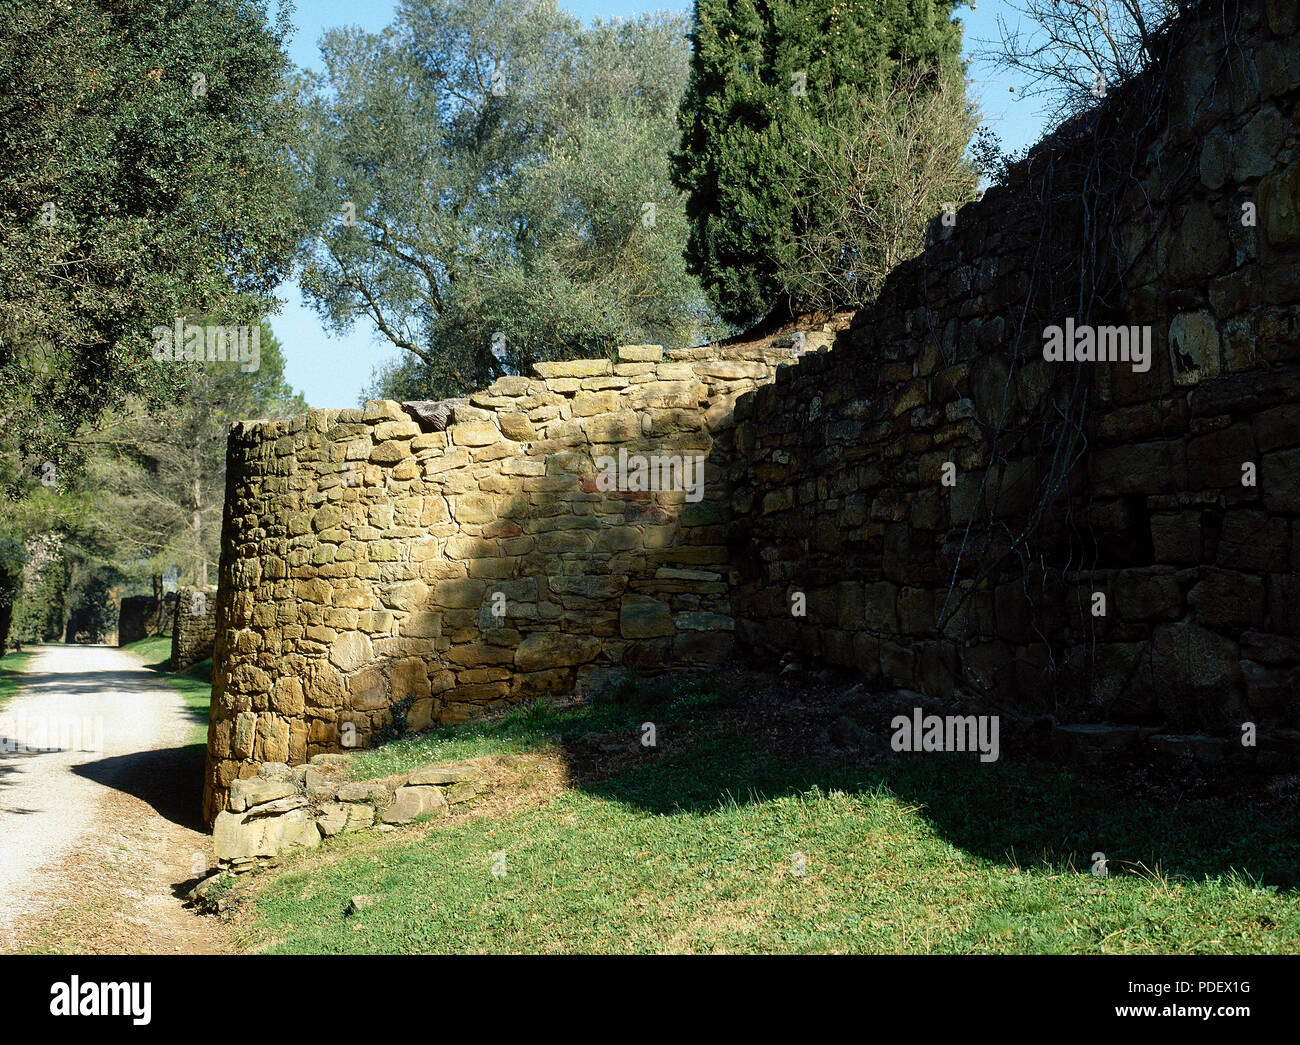 Iberian settlement of El Puig de Sant Andreu. 6th century-2nd century BC. Iberian-Roman wall. Circular tower belonging to the oldest fortification (late 6th century-early 5th century BC). Ullastret. Girona province. Catalonia. Spain. - Stock Image